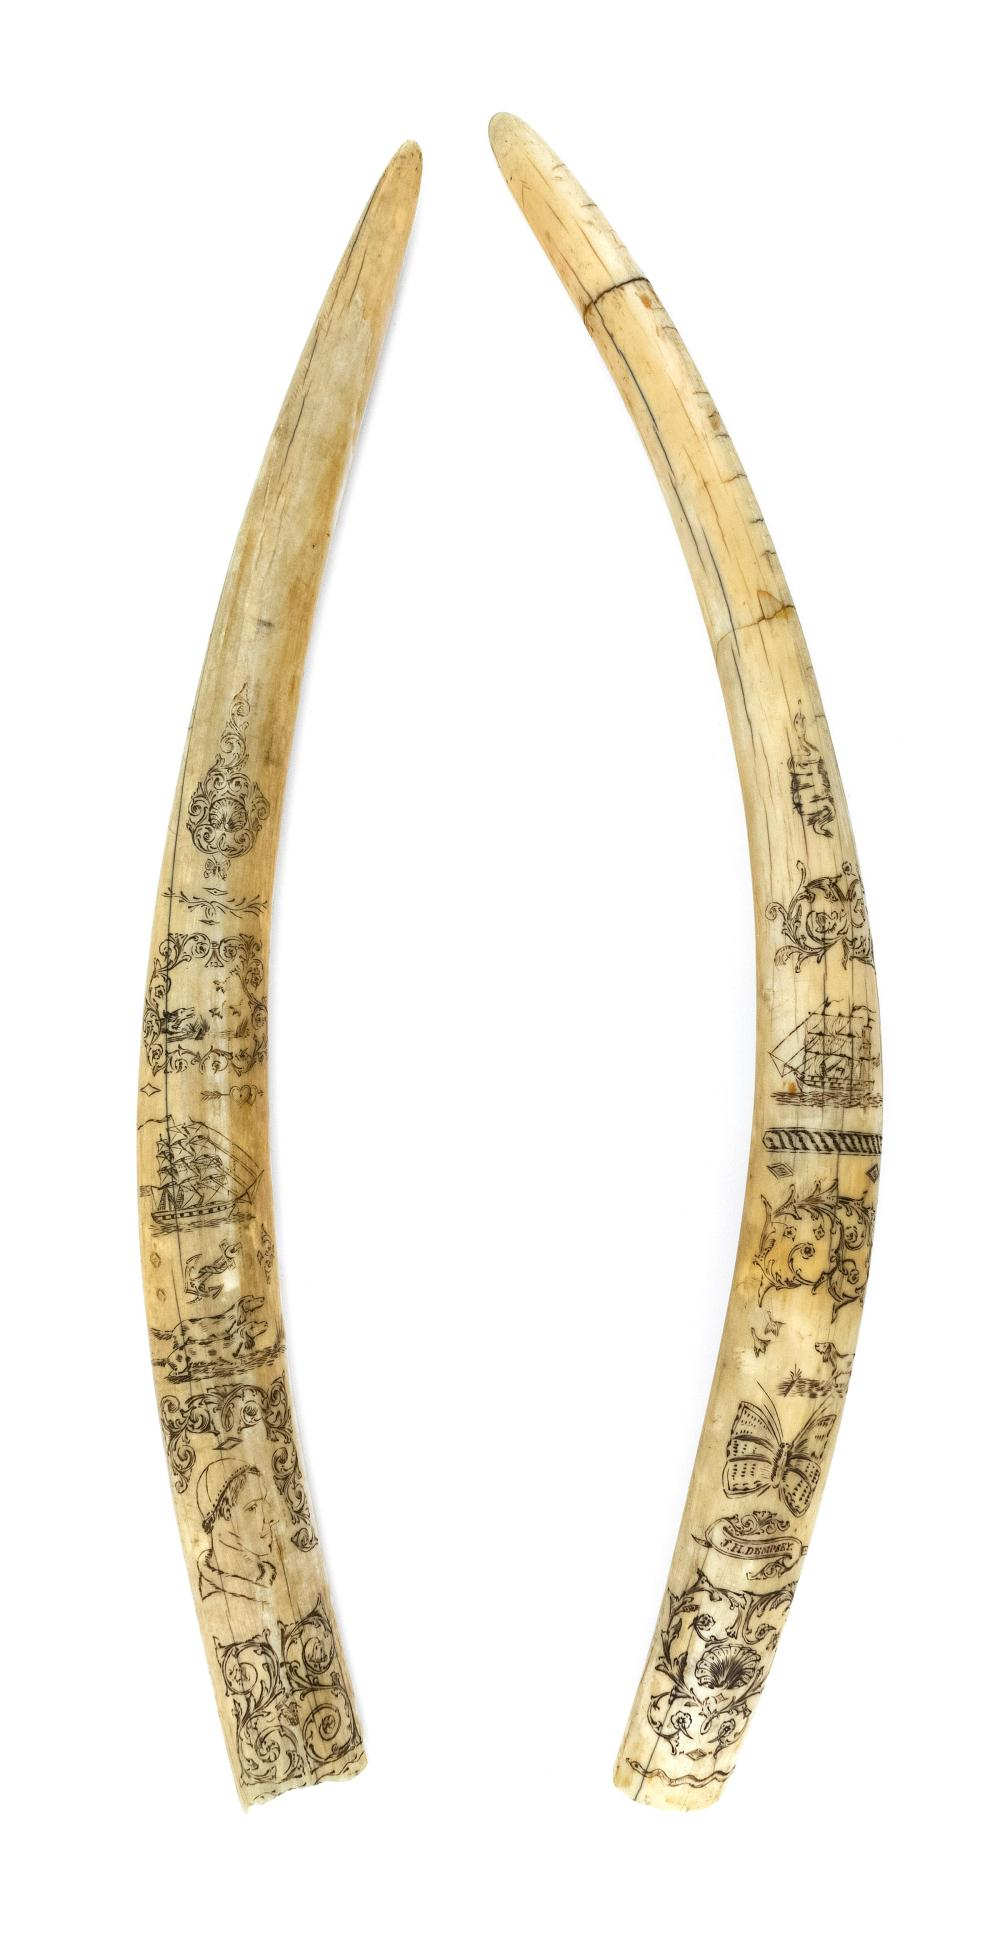 PAIR OF SCRIMSHAW WALRUS TUSKS Depict floral, foliate and shell designs, a bird dog and birds, a heart with an arrow, three-masted s...